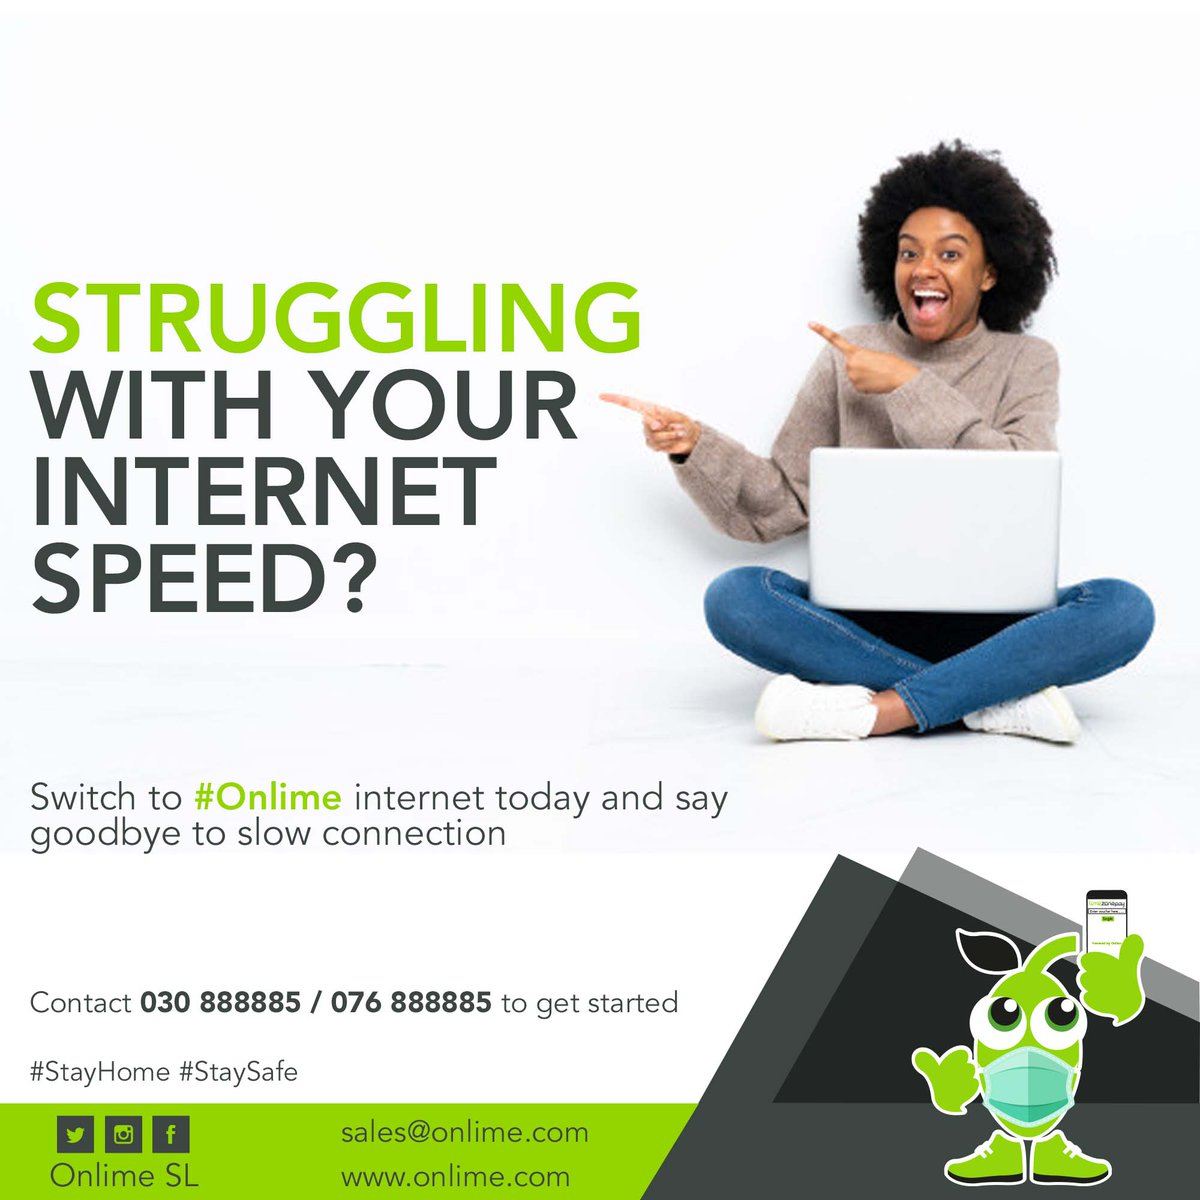 Switch to #onlime internet today and say goodbye to slow connection. Enjoy uninterrupted streaming at Super-Fast Speeds with #OnlimeInternet Call 076 888885 / 030 888885 or email sales@onlime.sl for more info. #SierraLeone #Freetown #SaloneTwitter https://t.co/UNDq8p7d1D